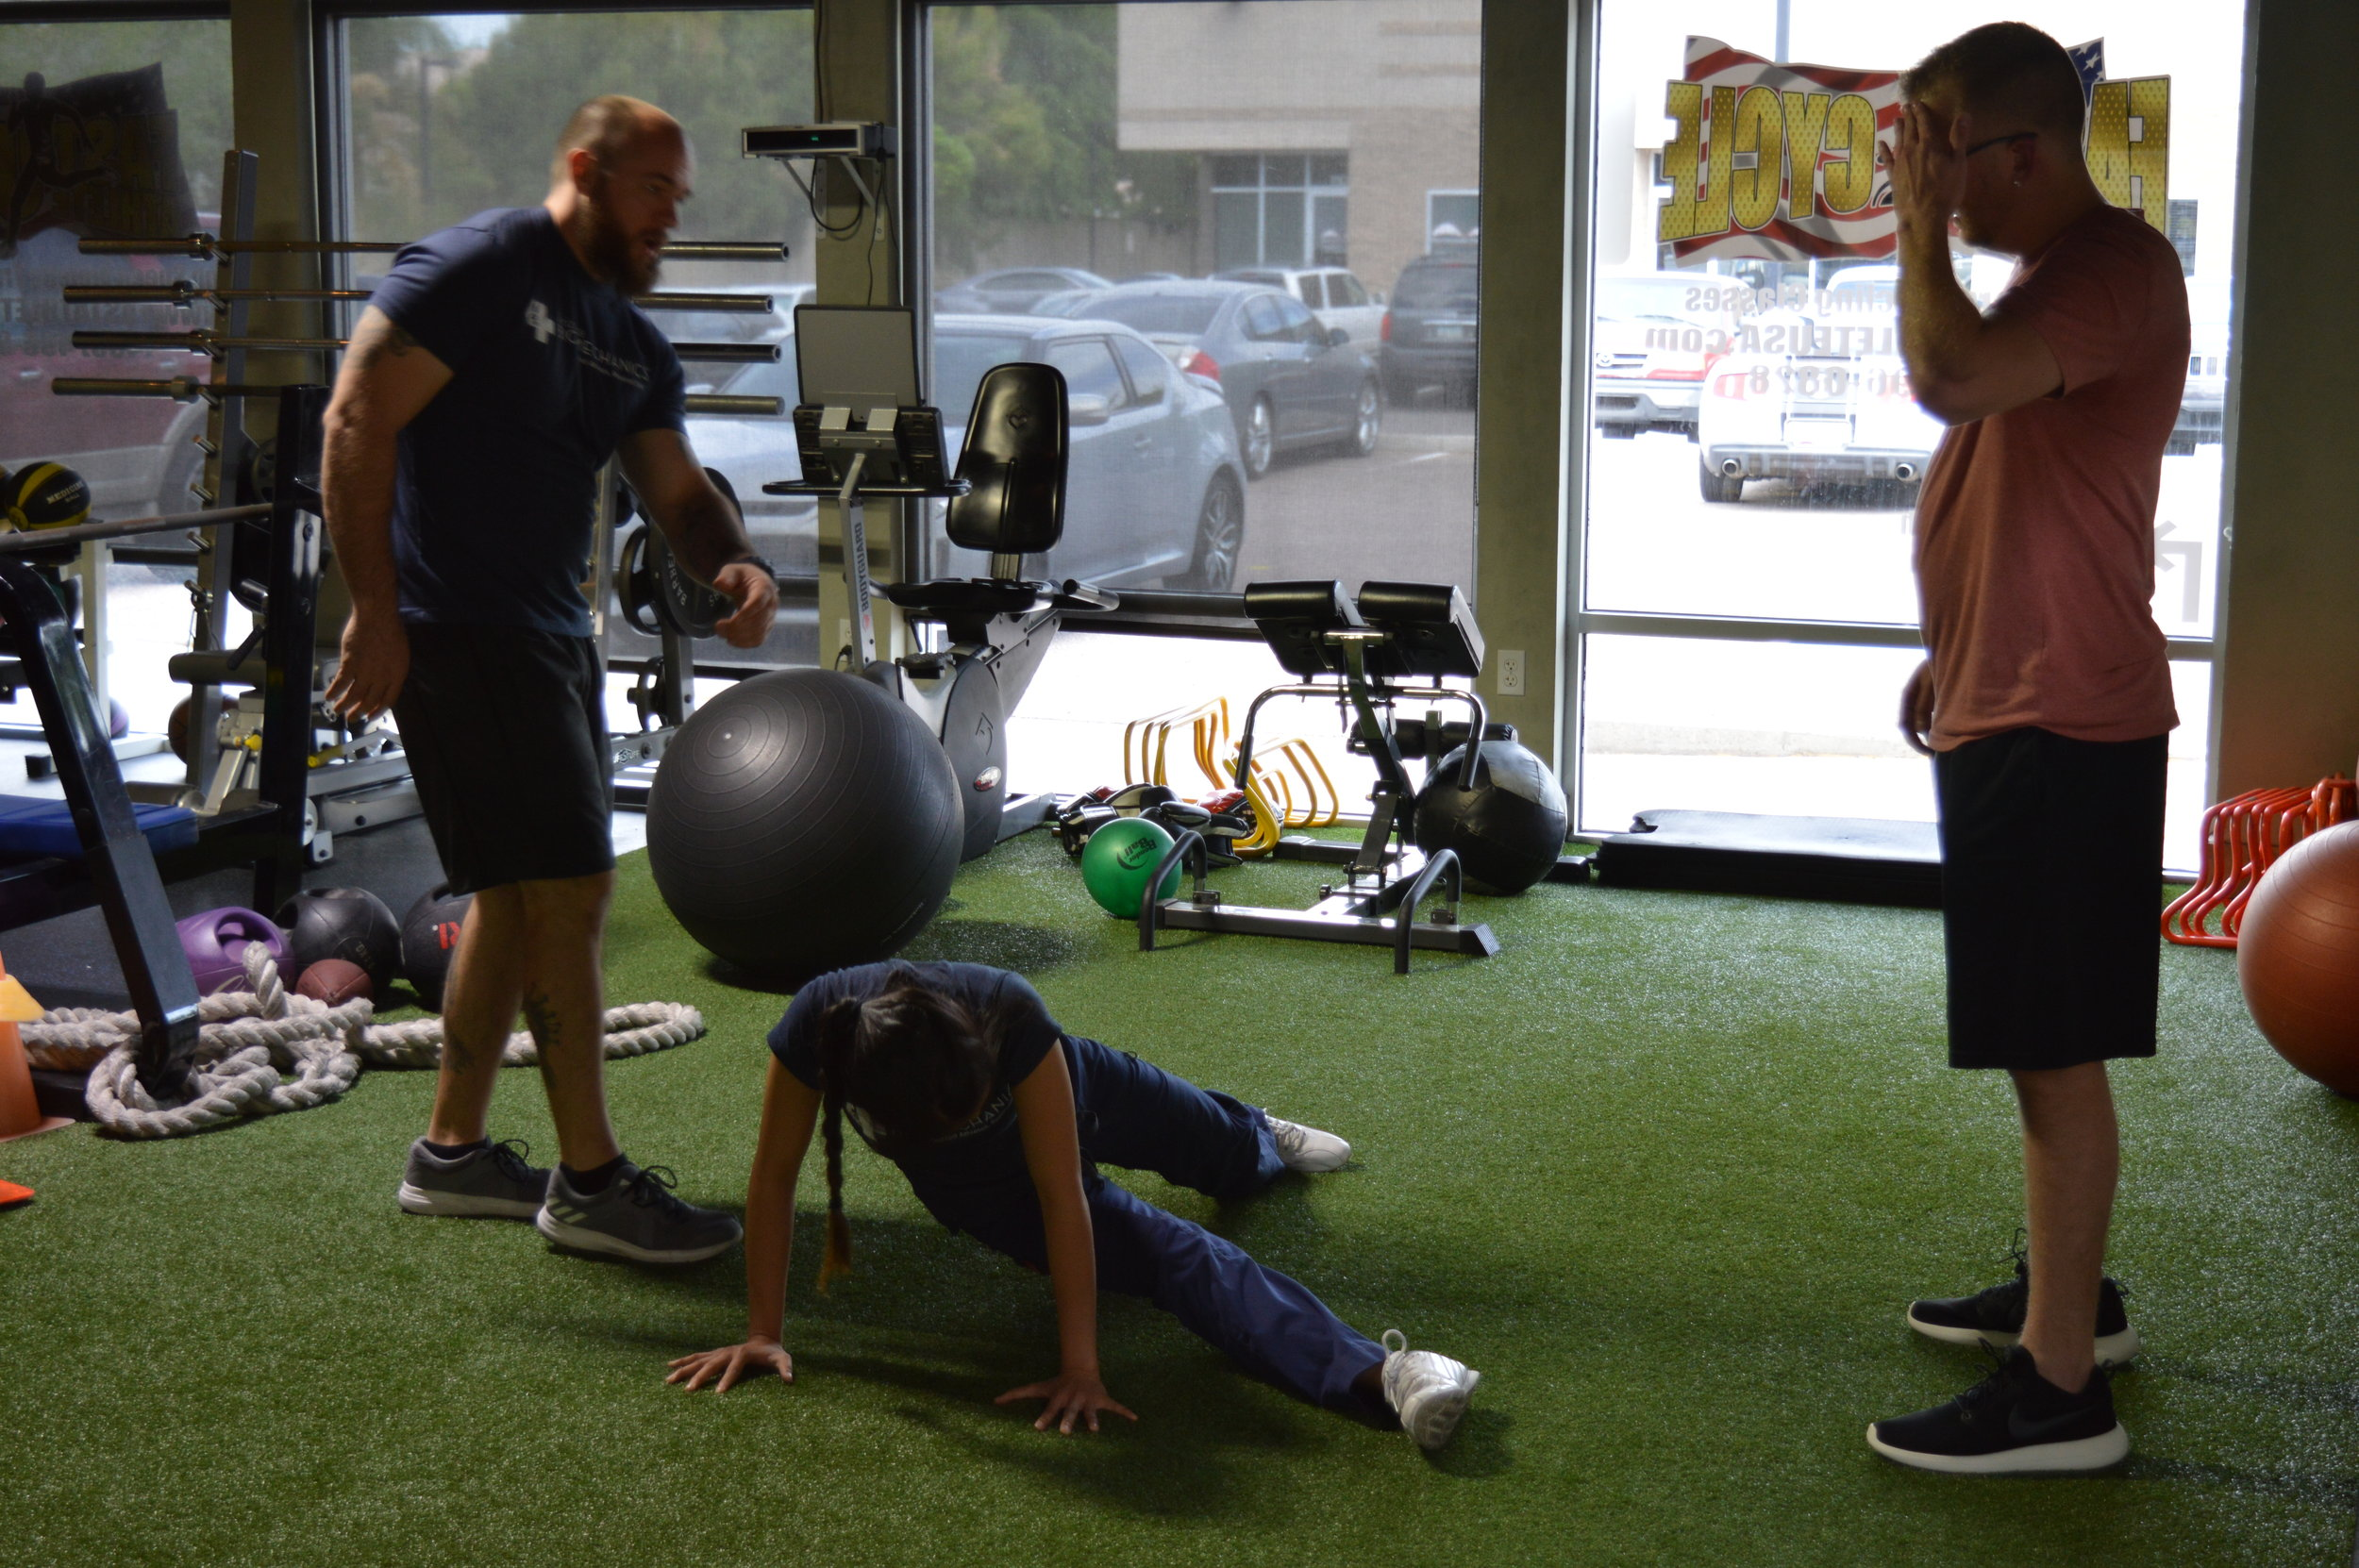 Therapeutic Exercise, Moblity, Stability, - Therapeutic exercises include a large range of physical activities which aim to restore, and more importantly, maintain strength as well as endurance, flexibility, stability and balance. The end-goal of incorporating exercises is to help return an injured individual back to their fully functioning, pain-free condition.